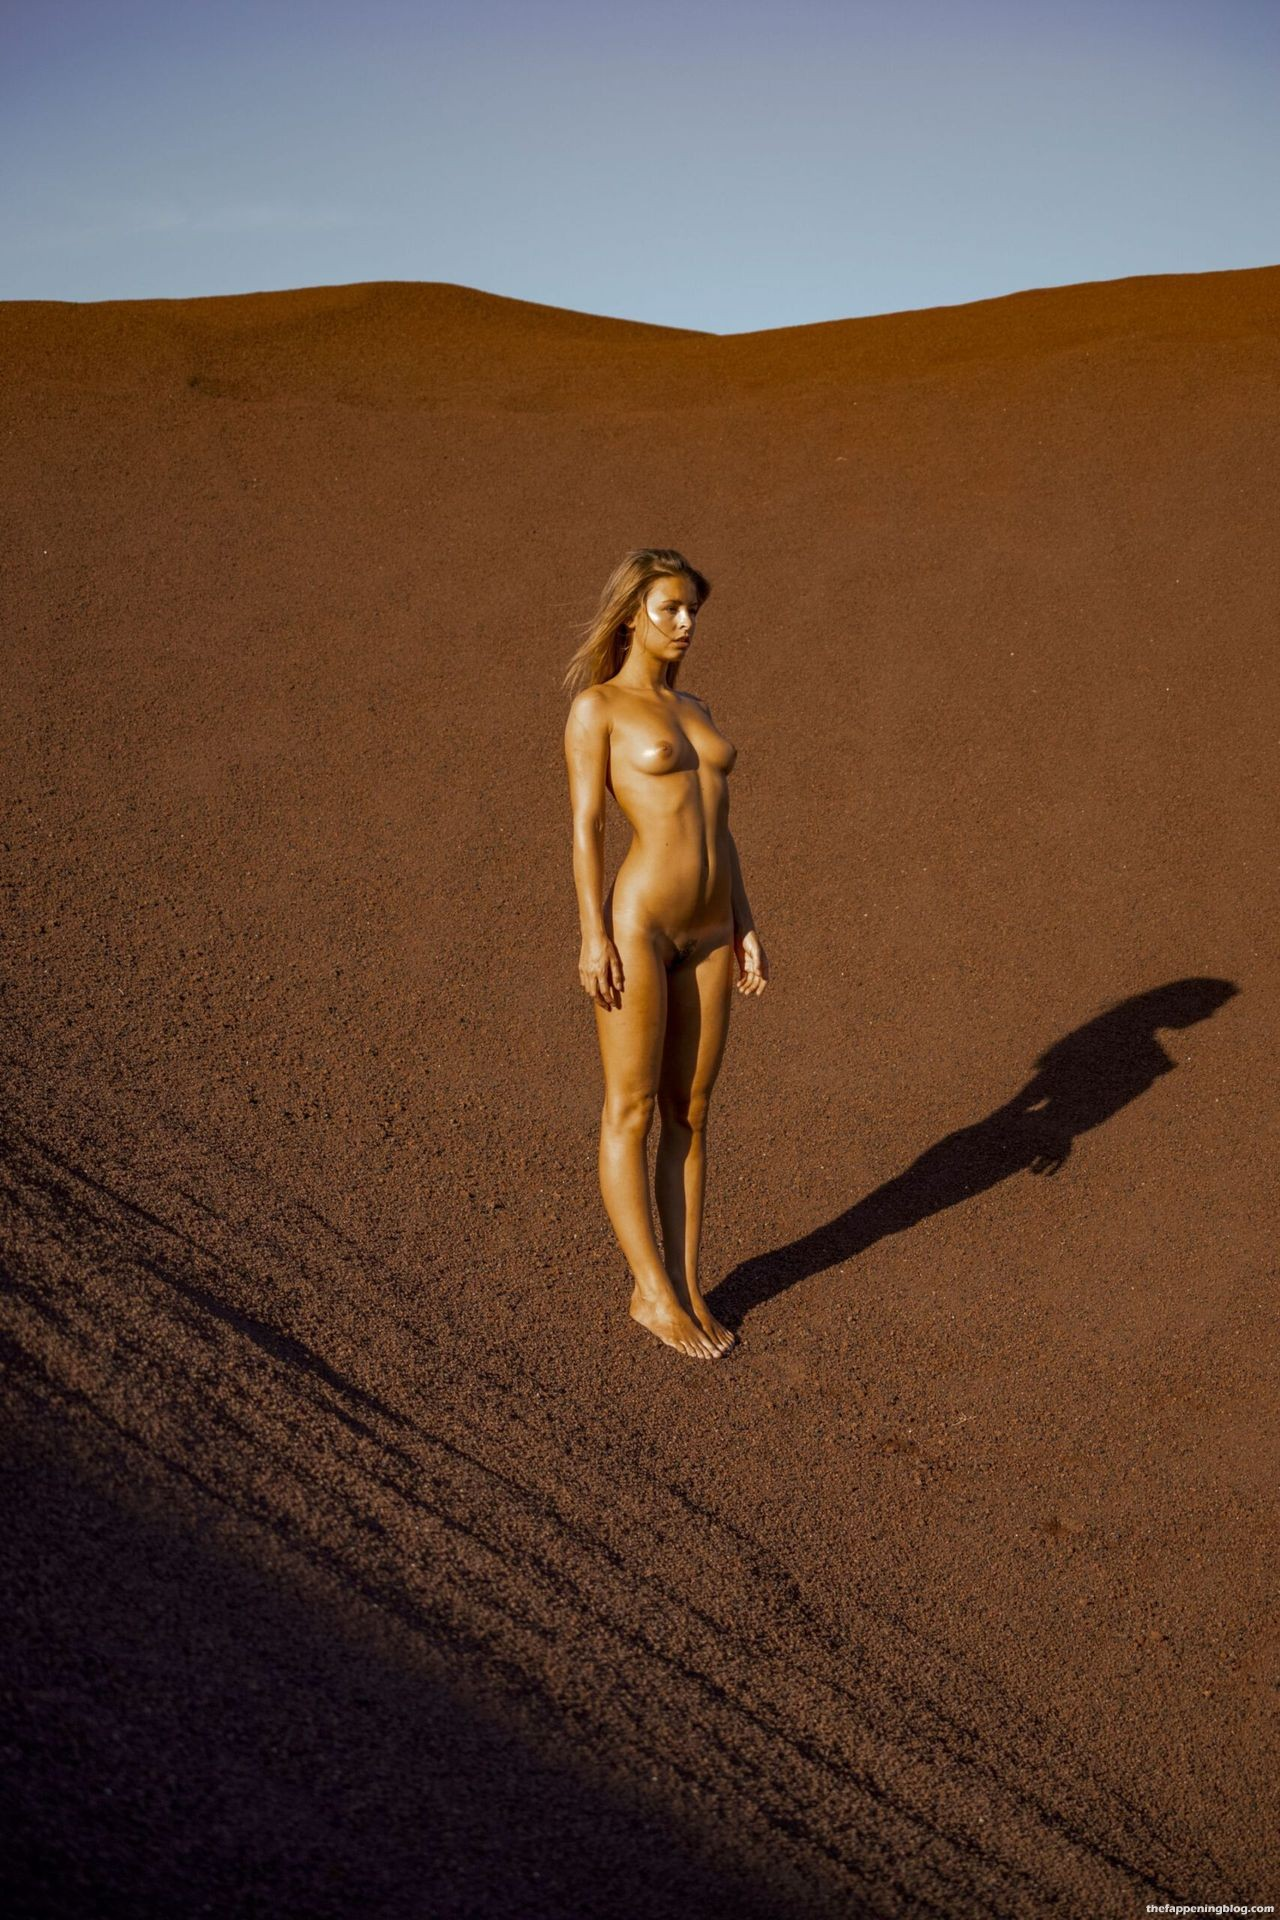 Marisa-Papen-Stunning-Naked-Body-26-scaled1-thefappeningblog.com_.jpg